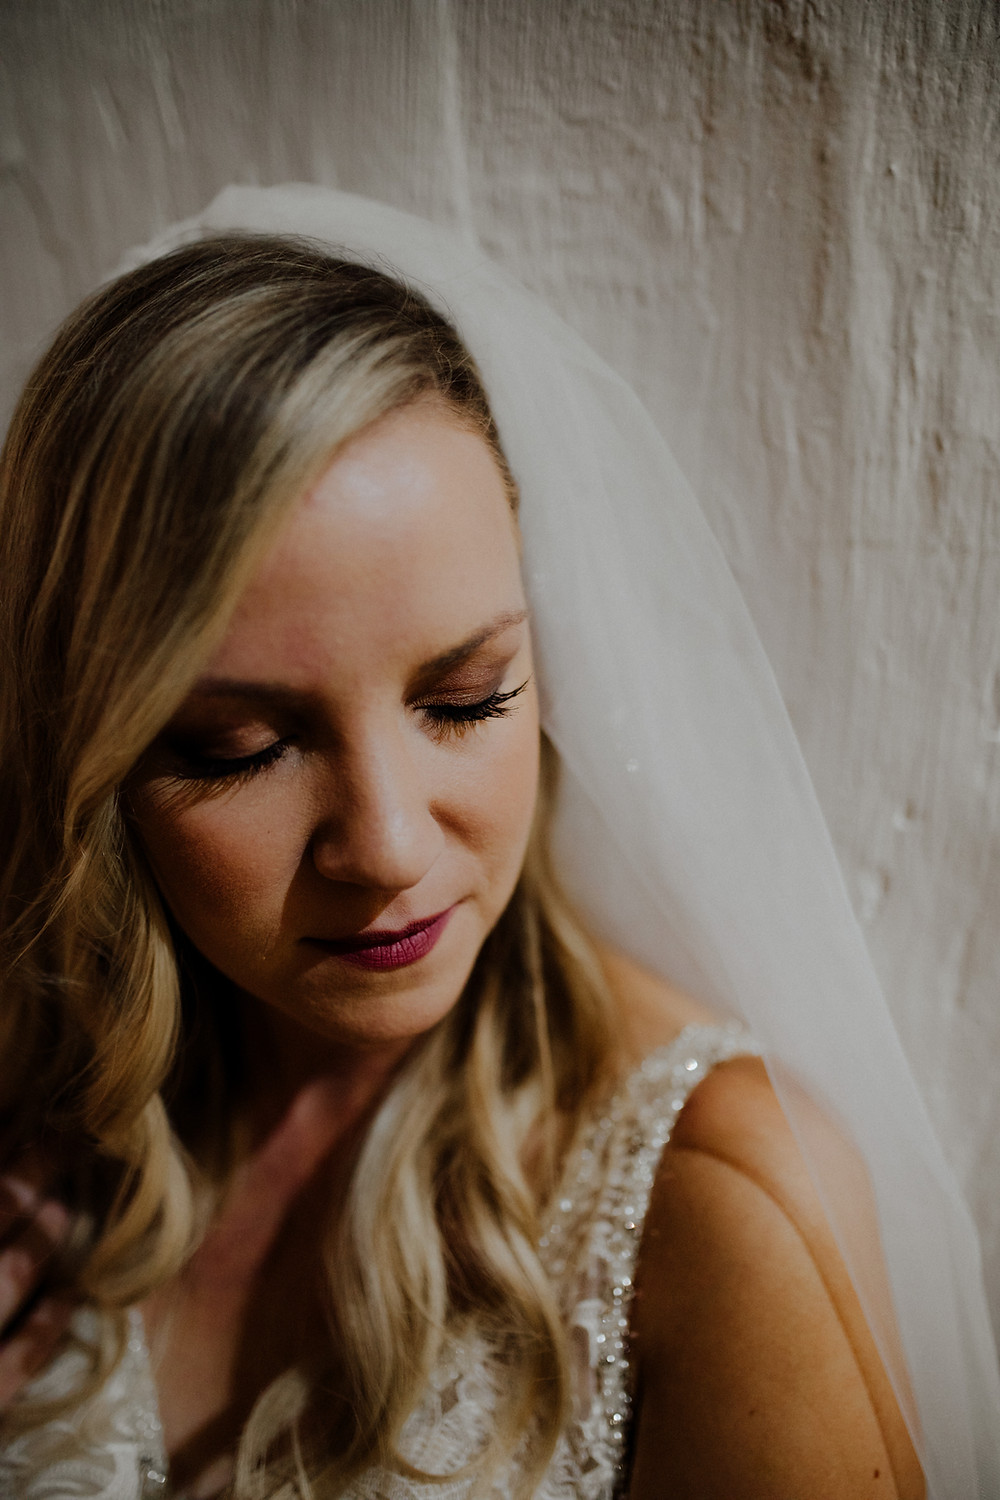 moody wedding photo taken by little blue bird photography in detroit, michigan